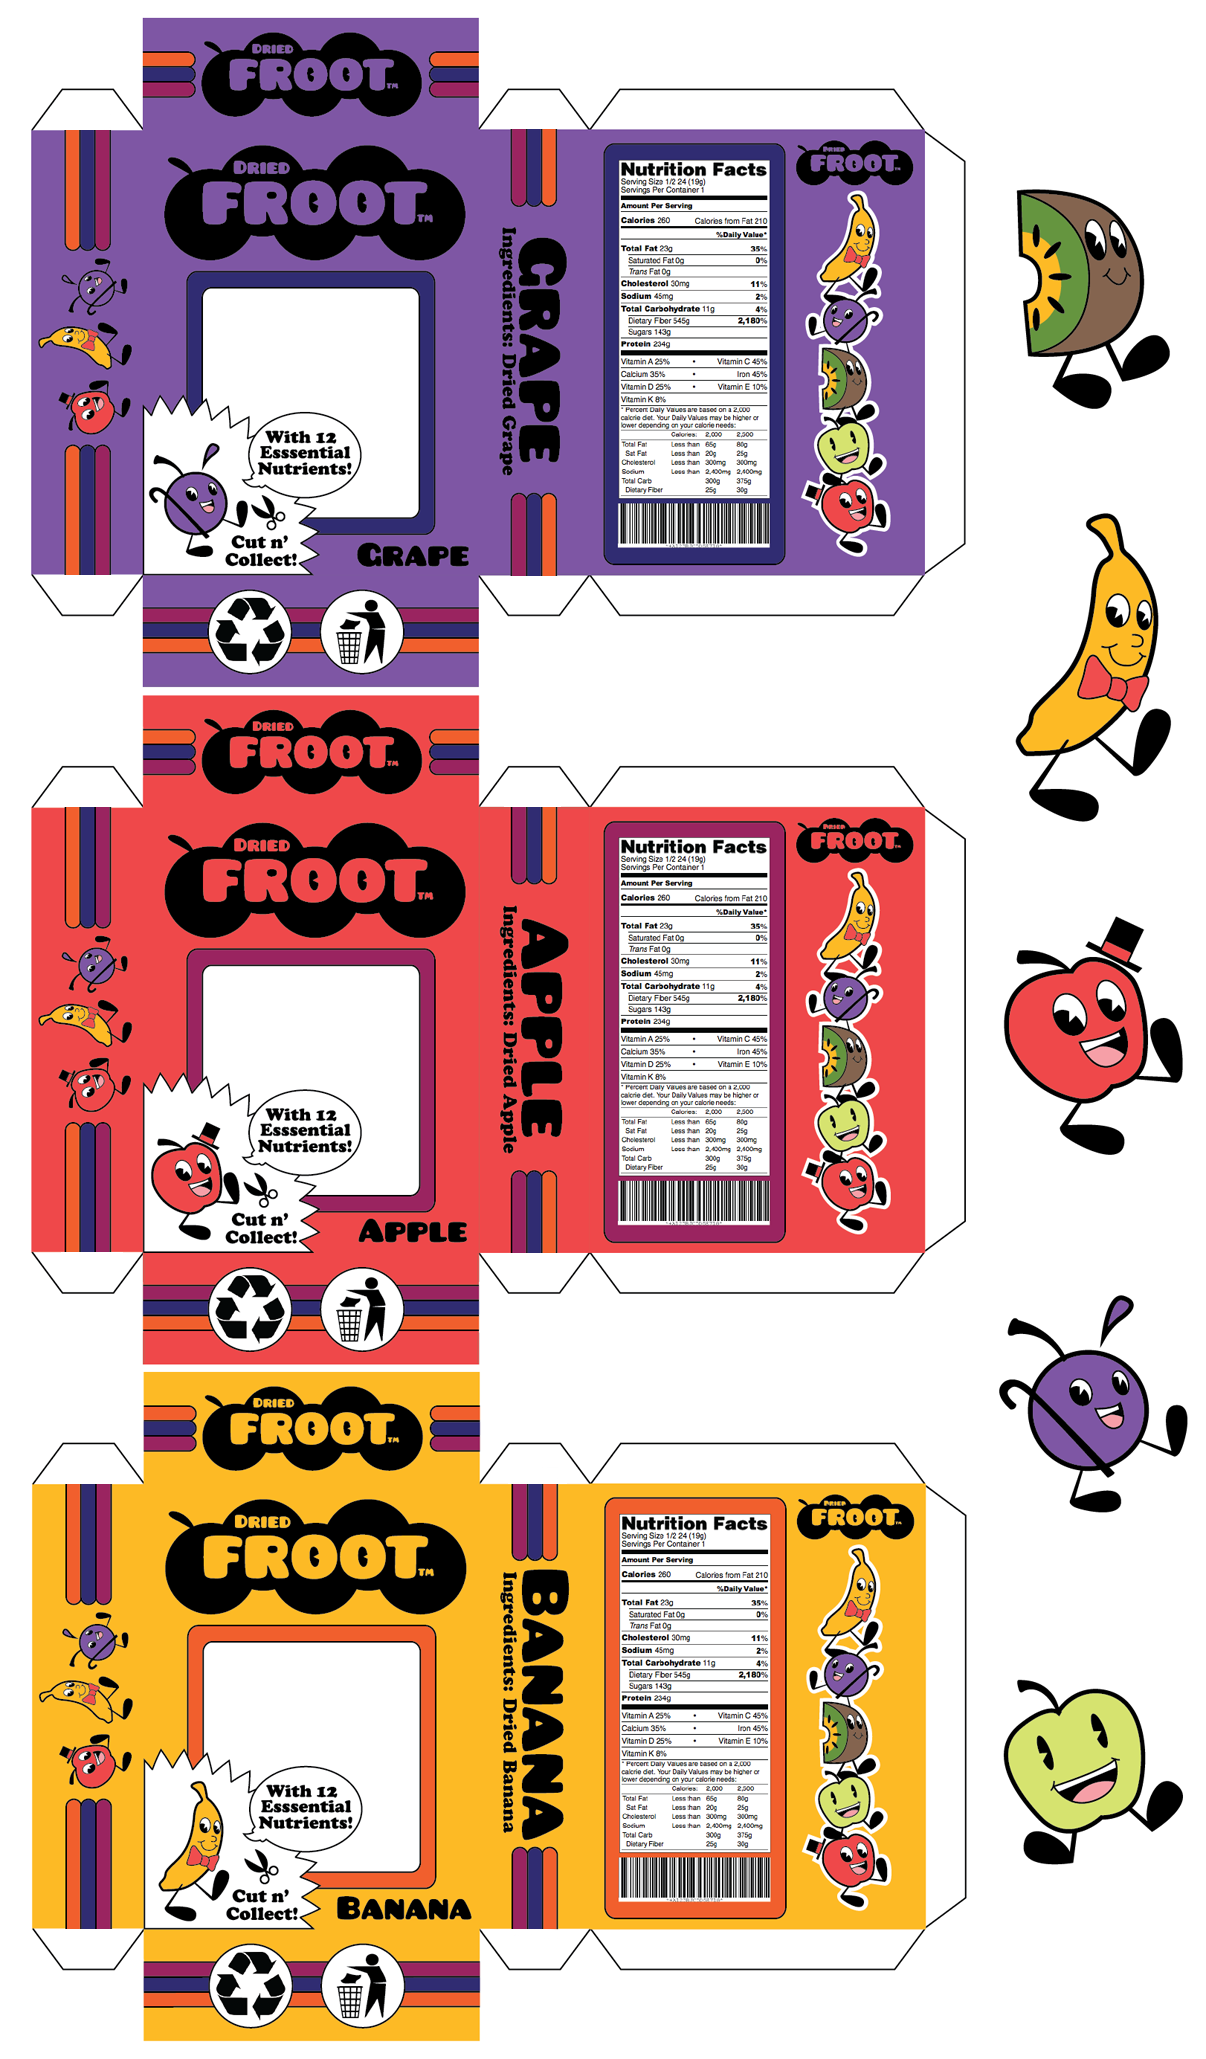 Dried Fruit Package Design By Hozna On Deviantart